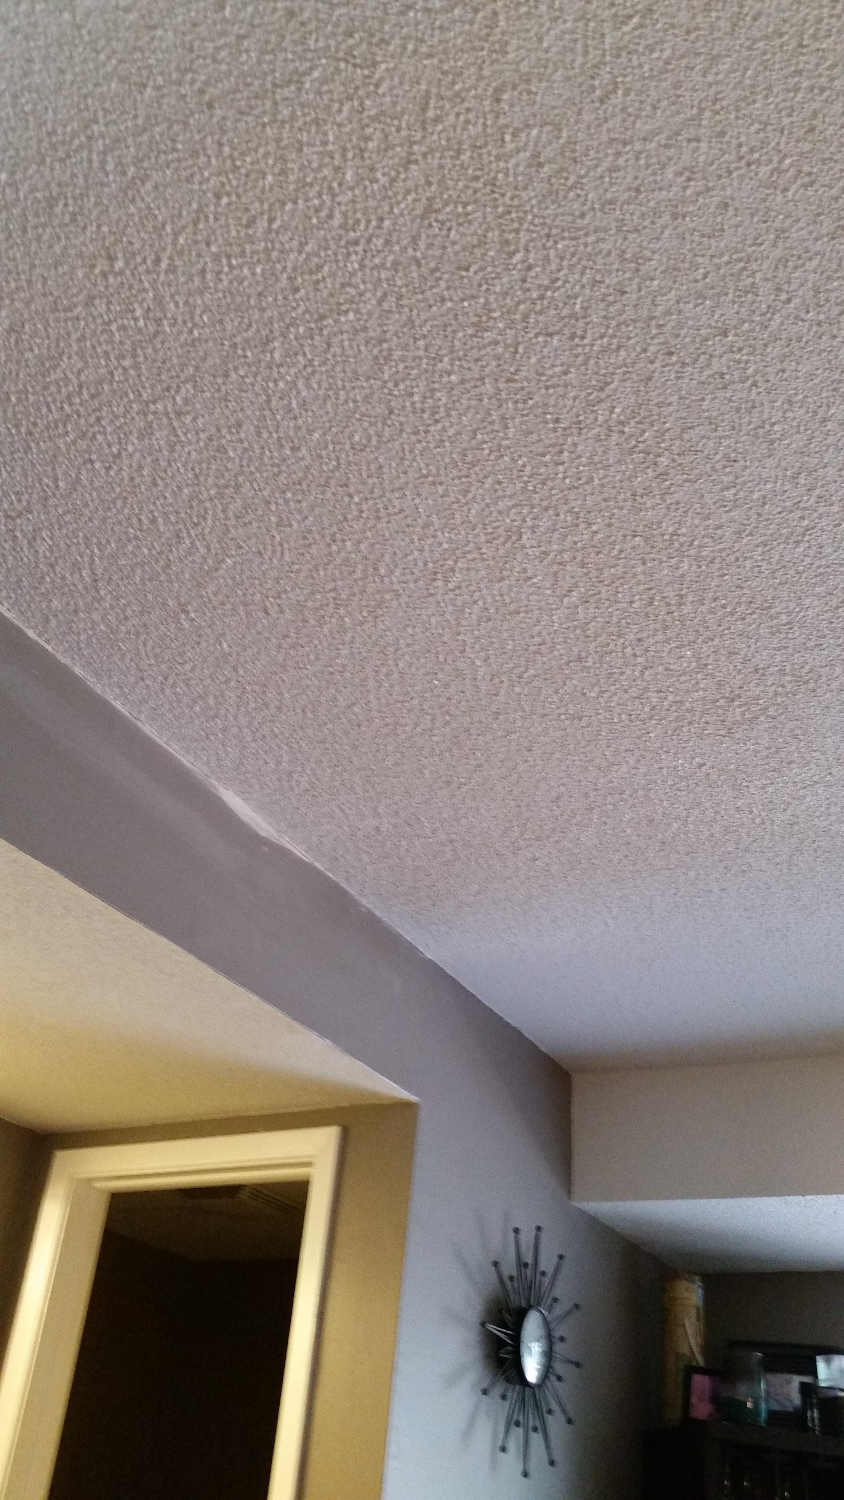 Ceiling Patch Textured